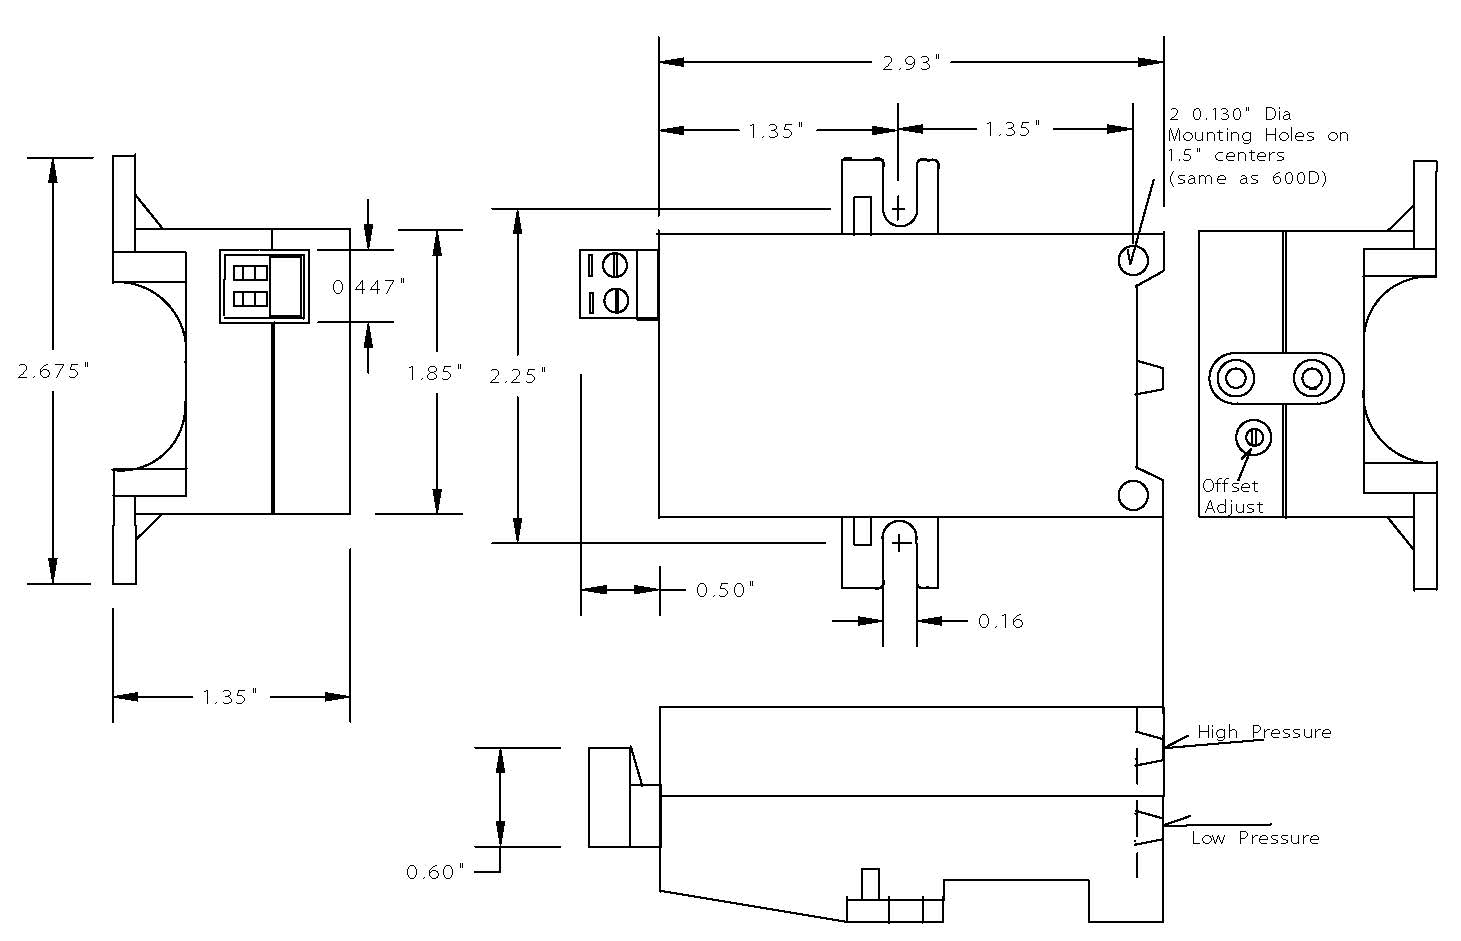 Series 880 Two Wire: 4-20mA Pressure Transducer - Controller Sensors